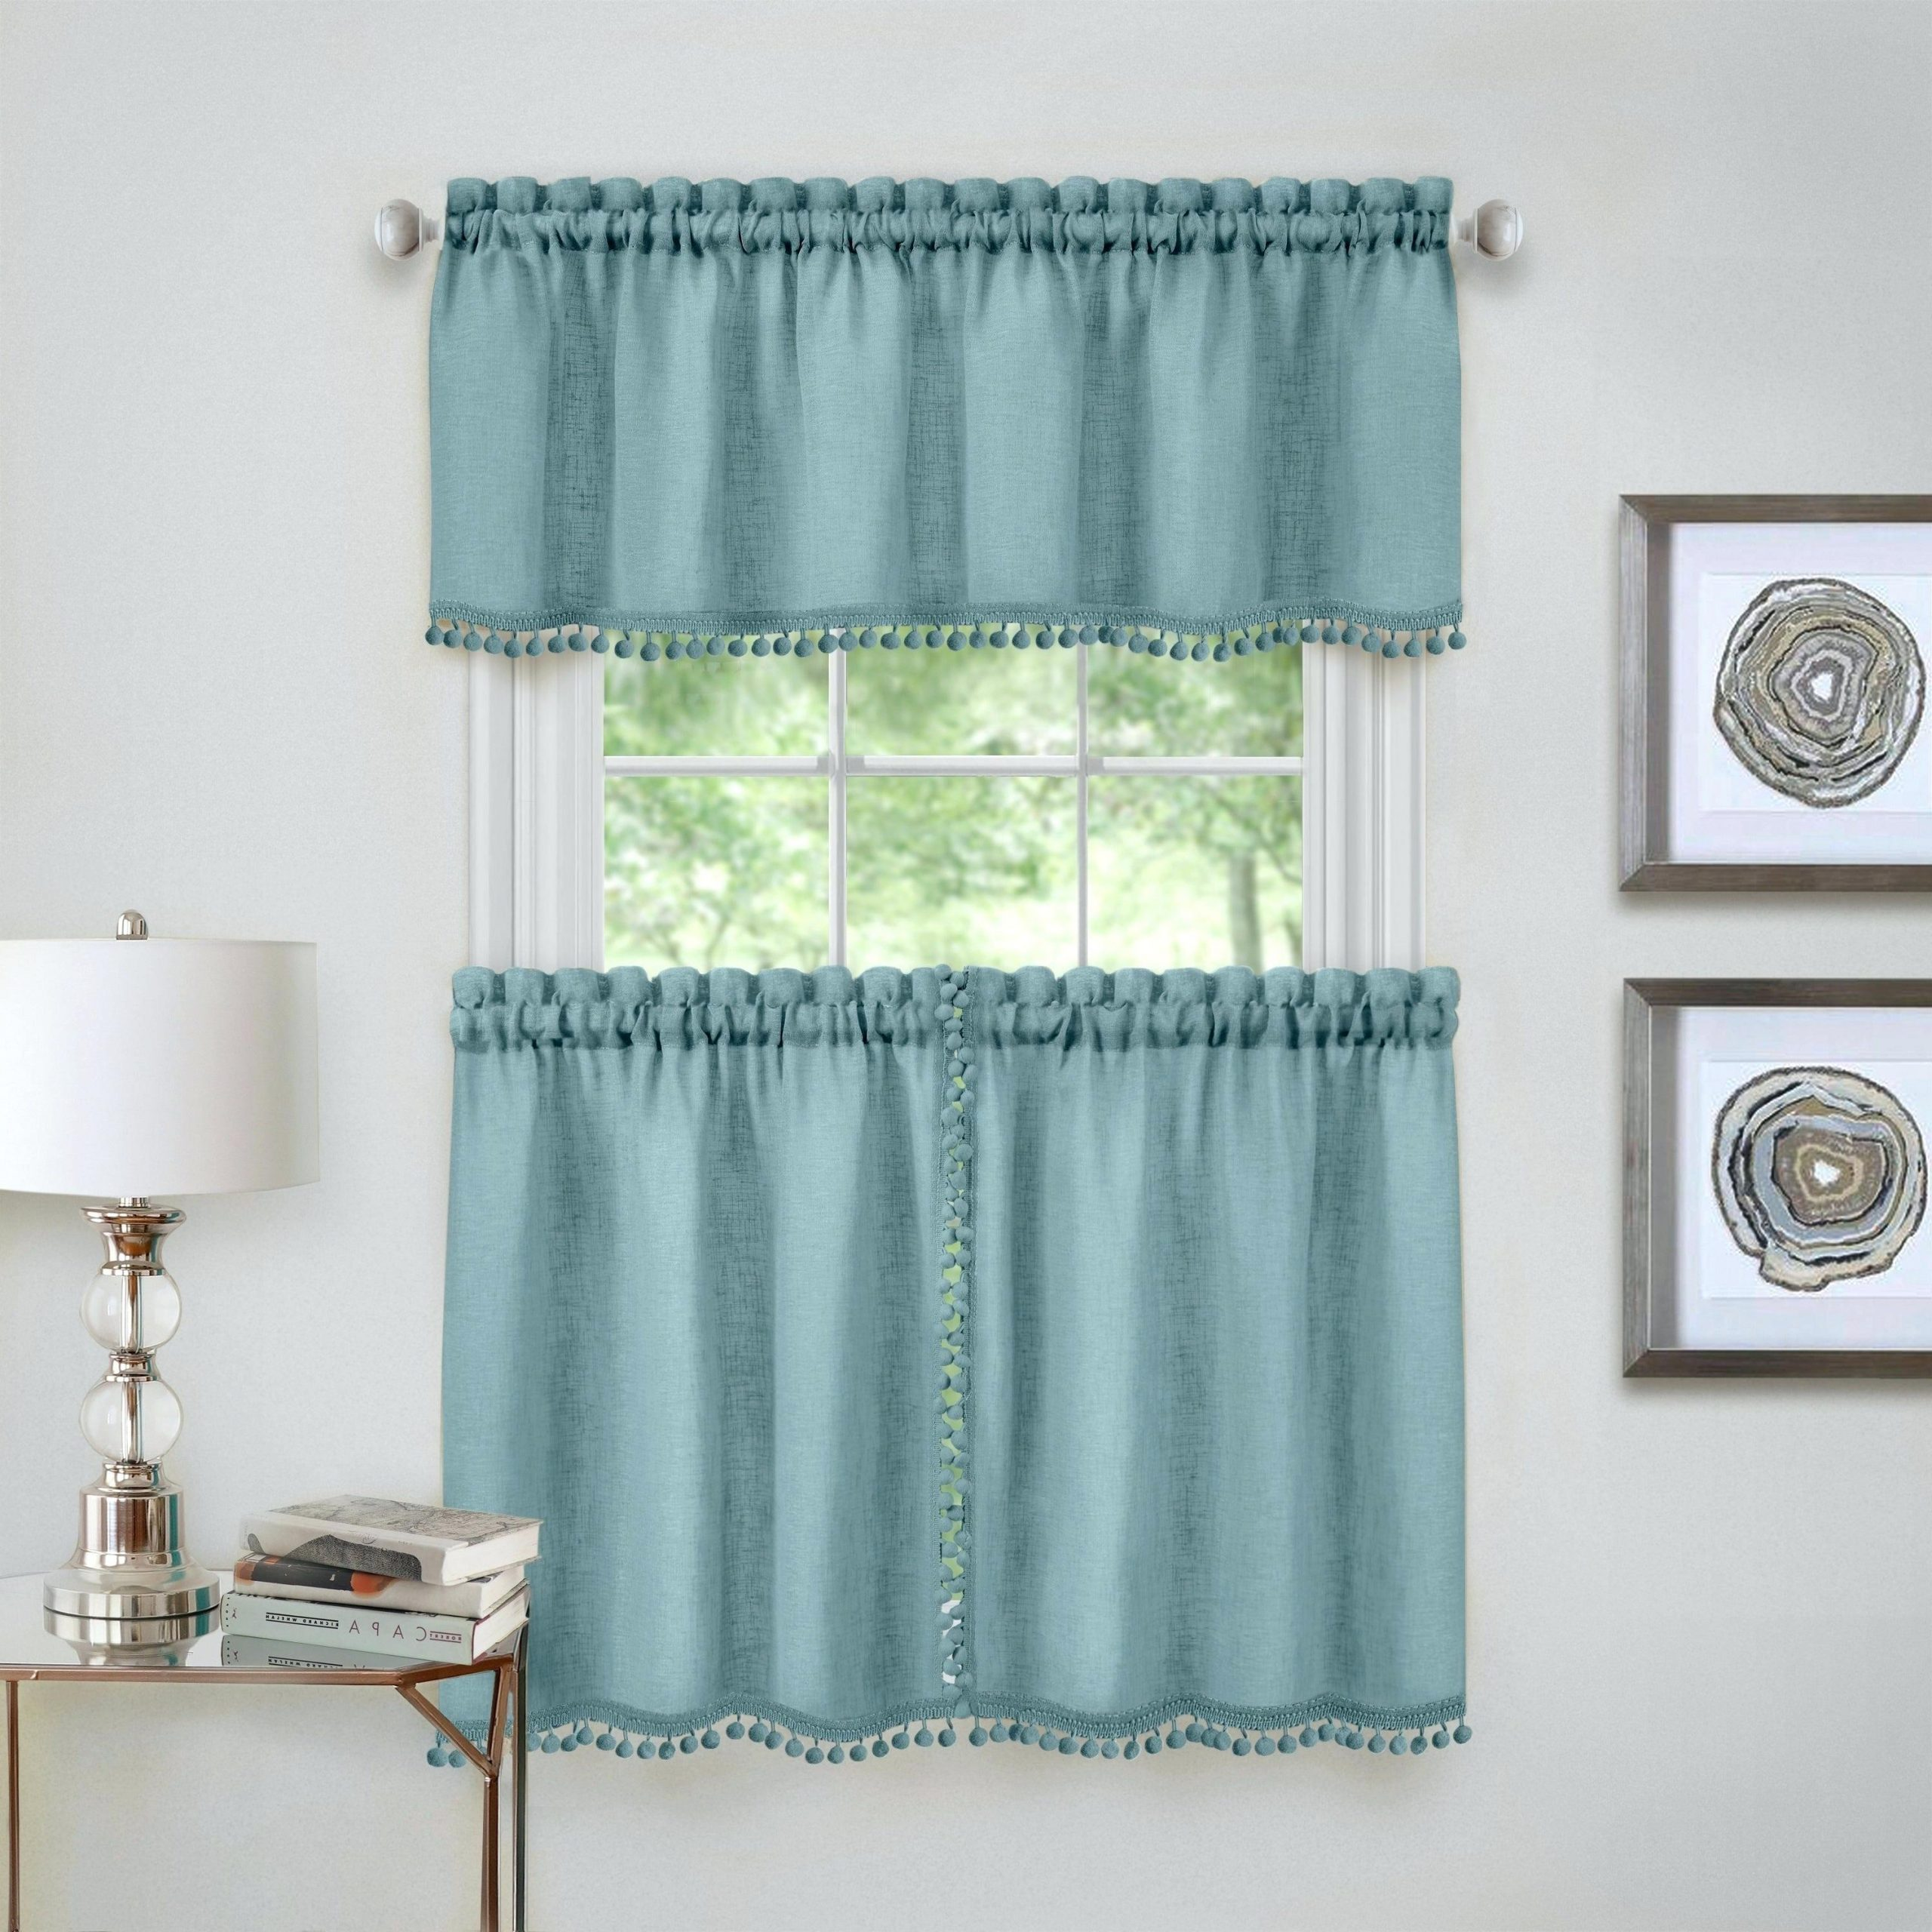 Geometric Print Microfiber 3 Piece Kitchen Curtain Valance And Tiers Sets In Most Recently Released Curtain Sets With Valance – Onsaturn (View 17 of 20)